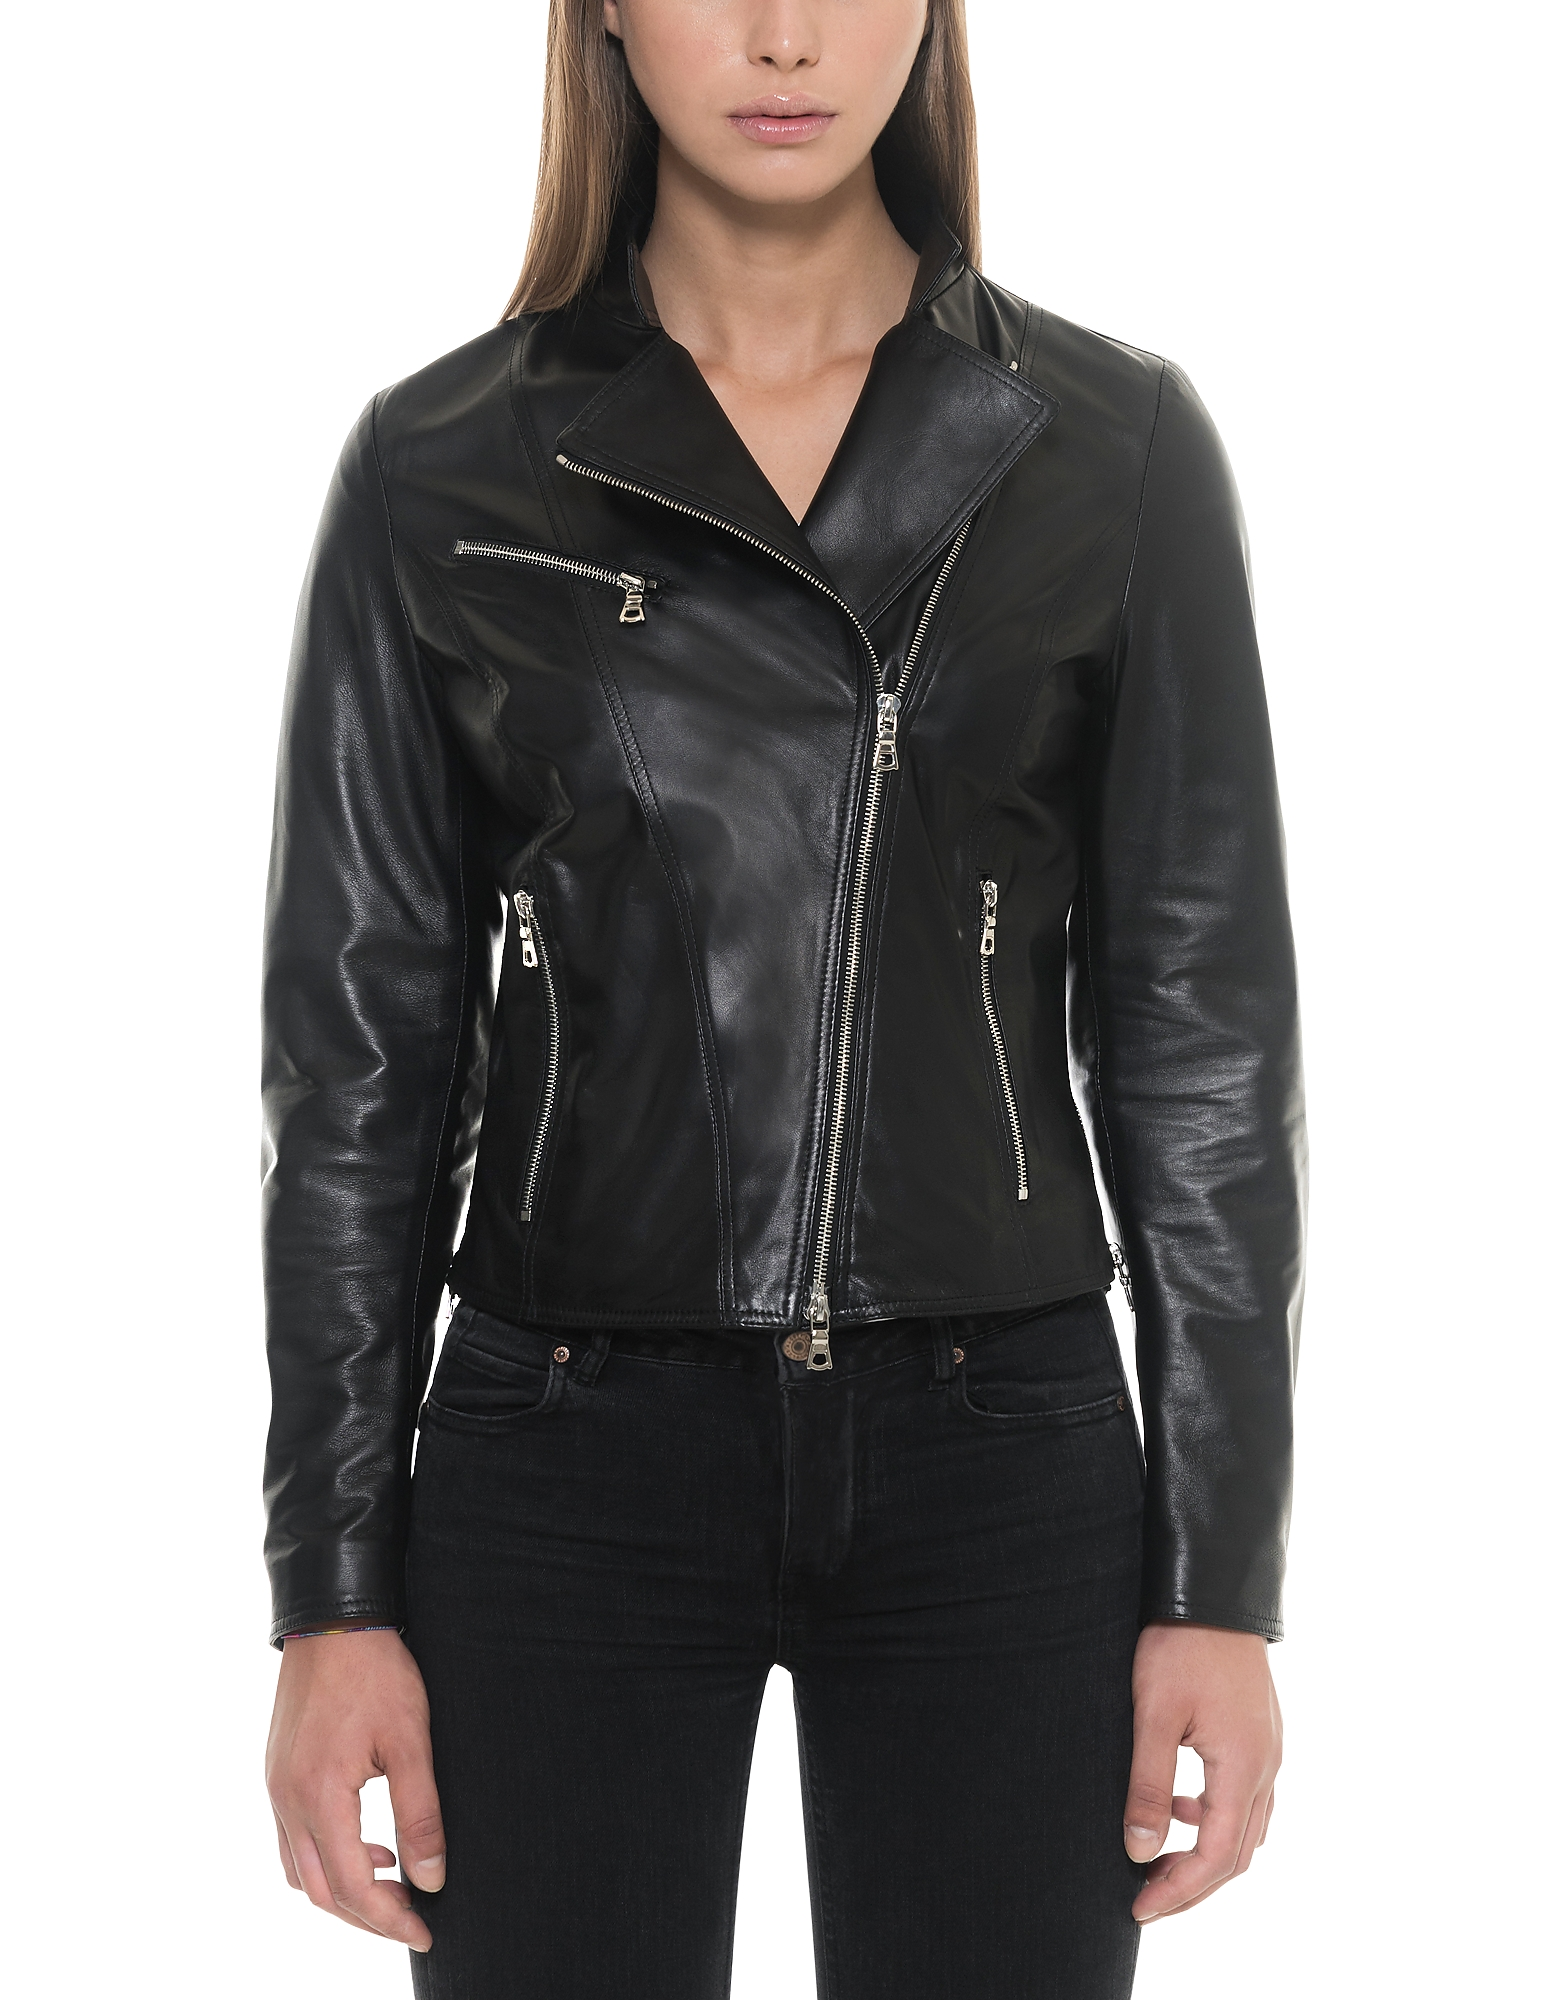 Forzieri Leather Jackets, Asymmetrical Zip Black Leather Women's Jacket